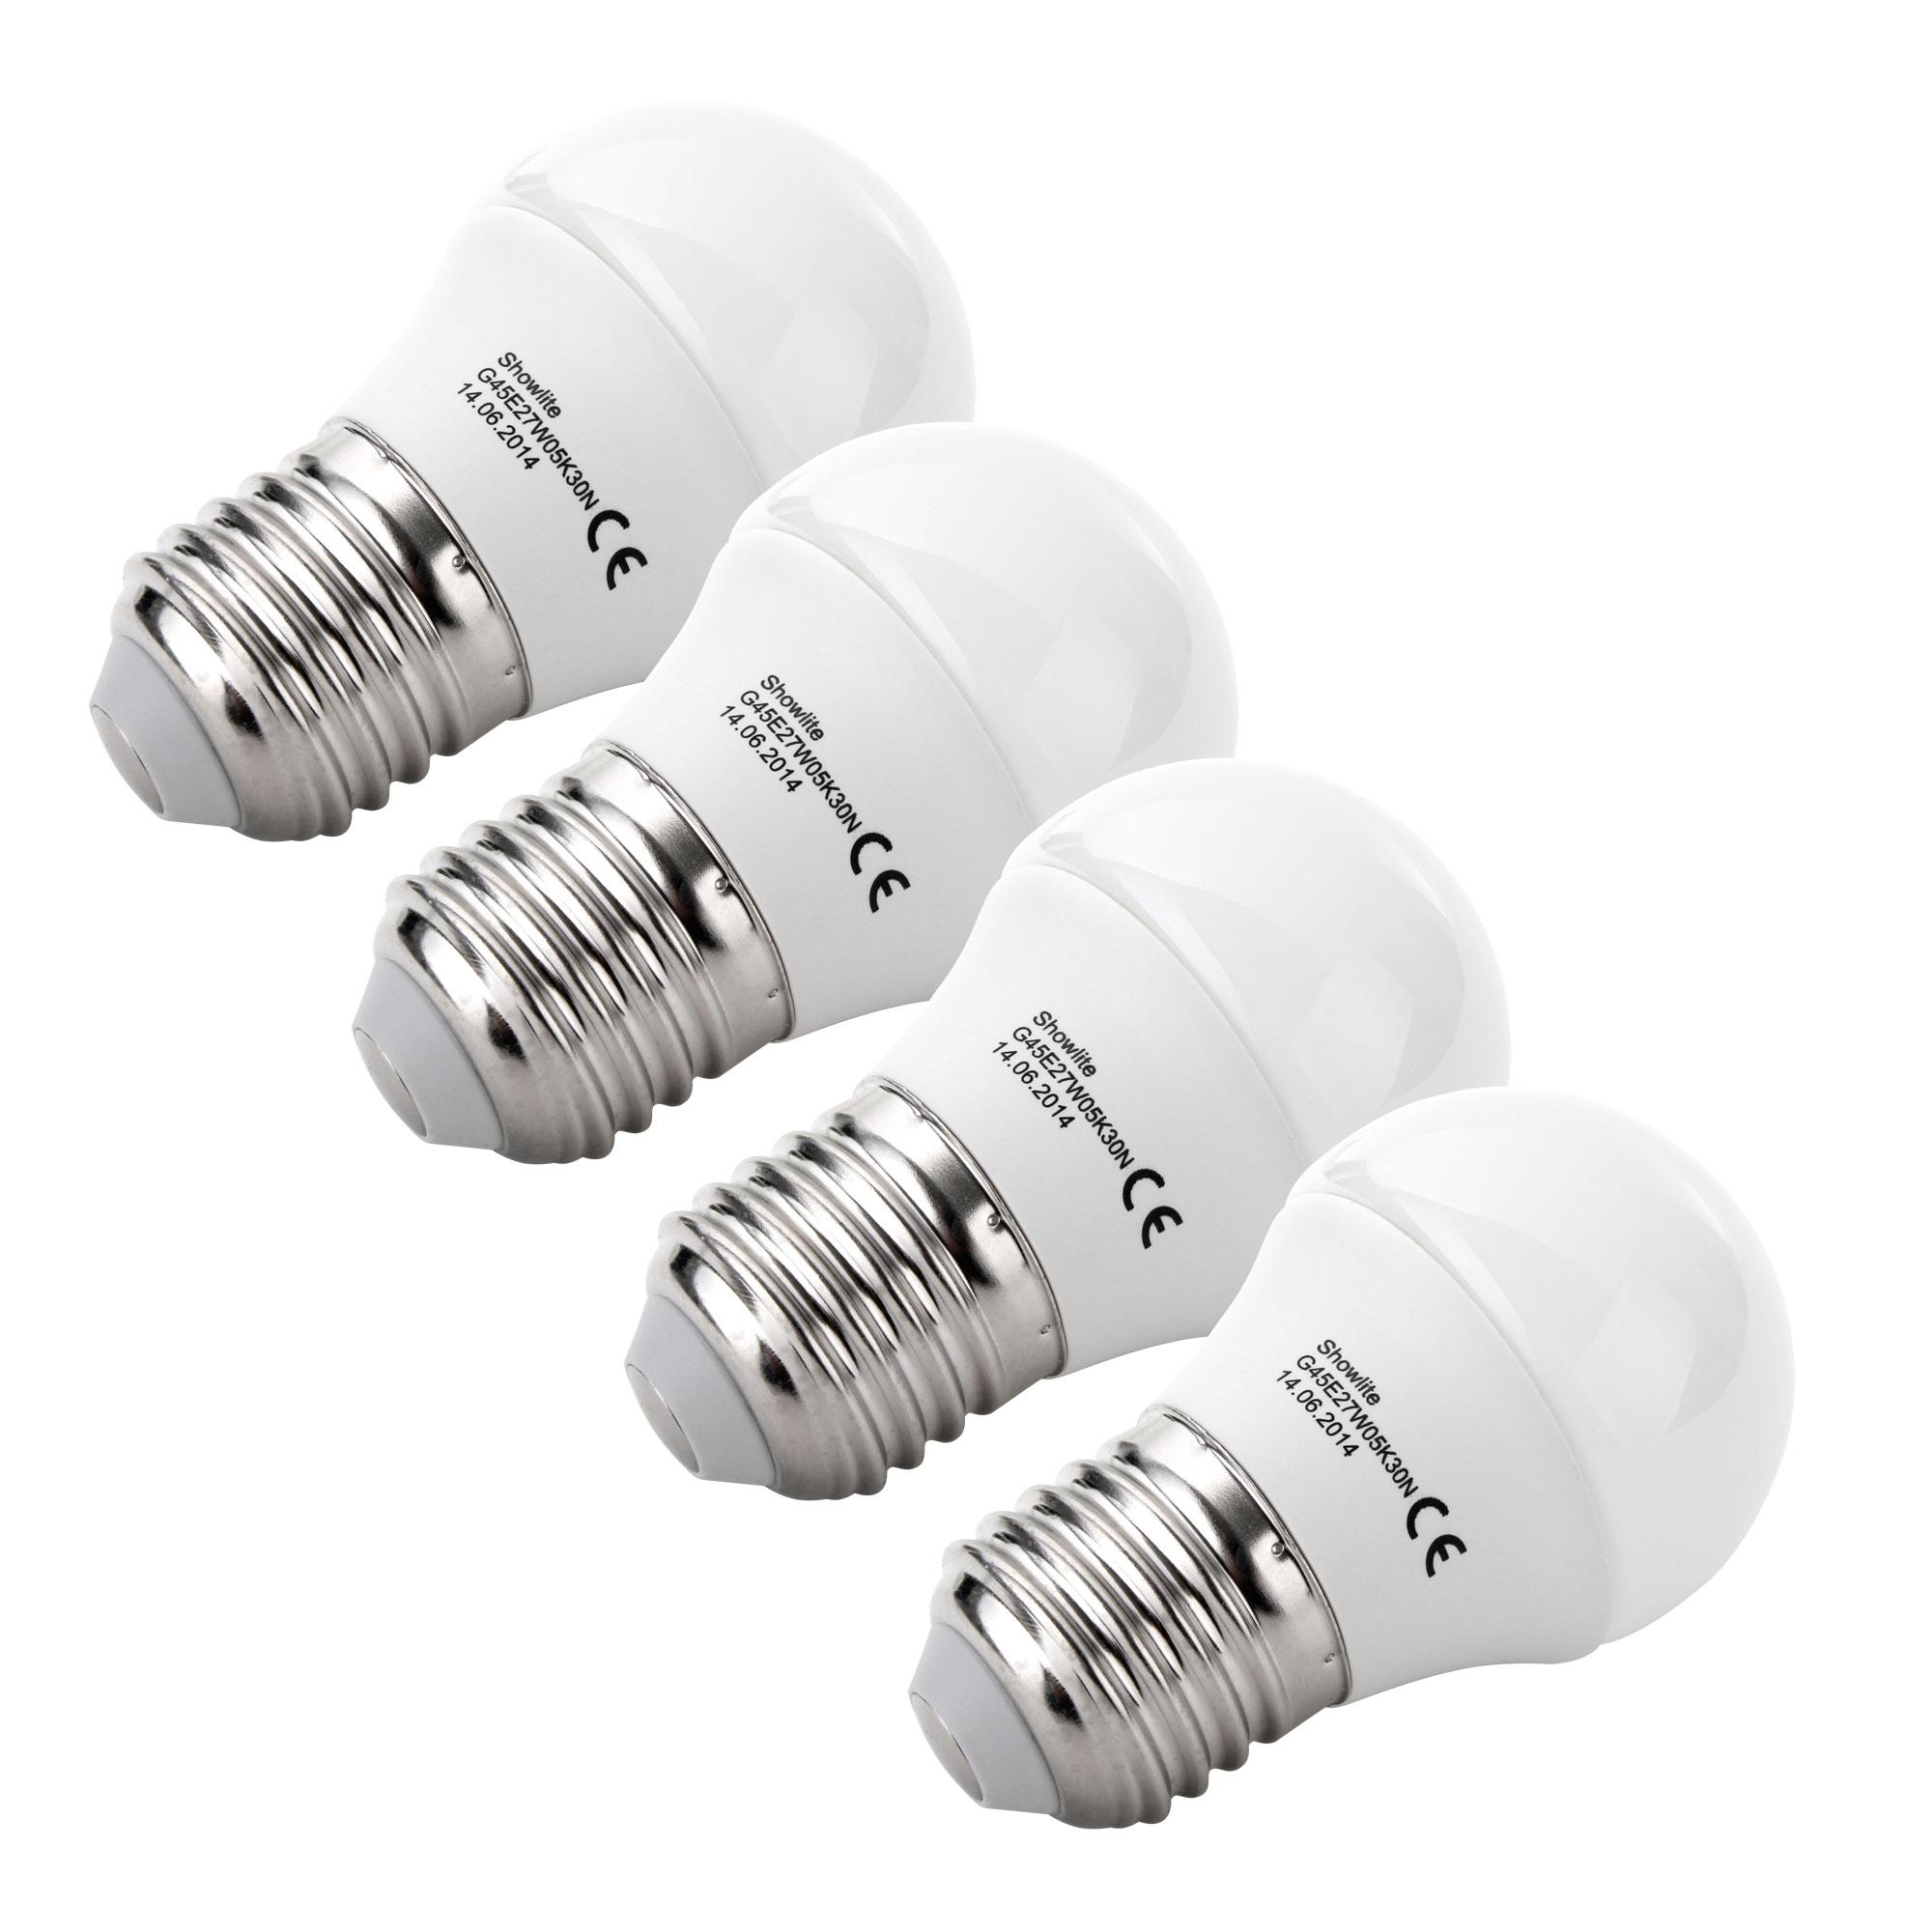 5 Watt Led 4x Set Showlite Led Spotlight G45e27w05k30n 5 Watt 300 Lumen Socket E27 3000 Kelvin